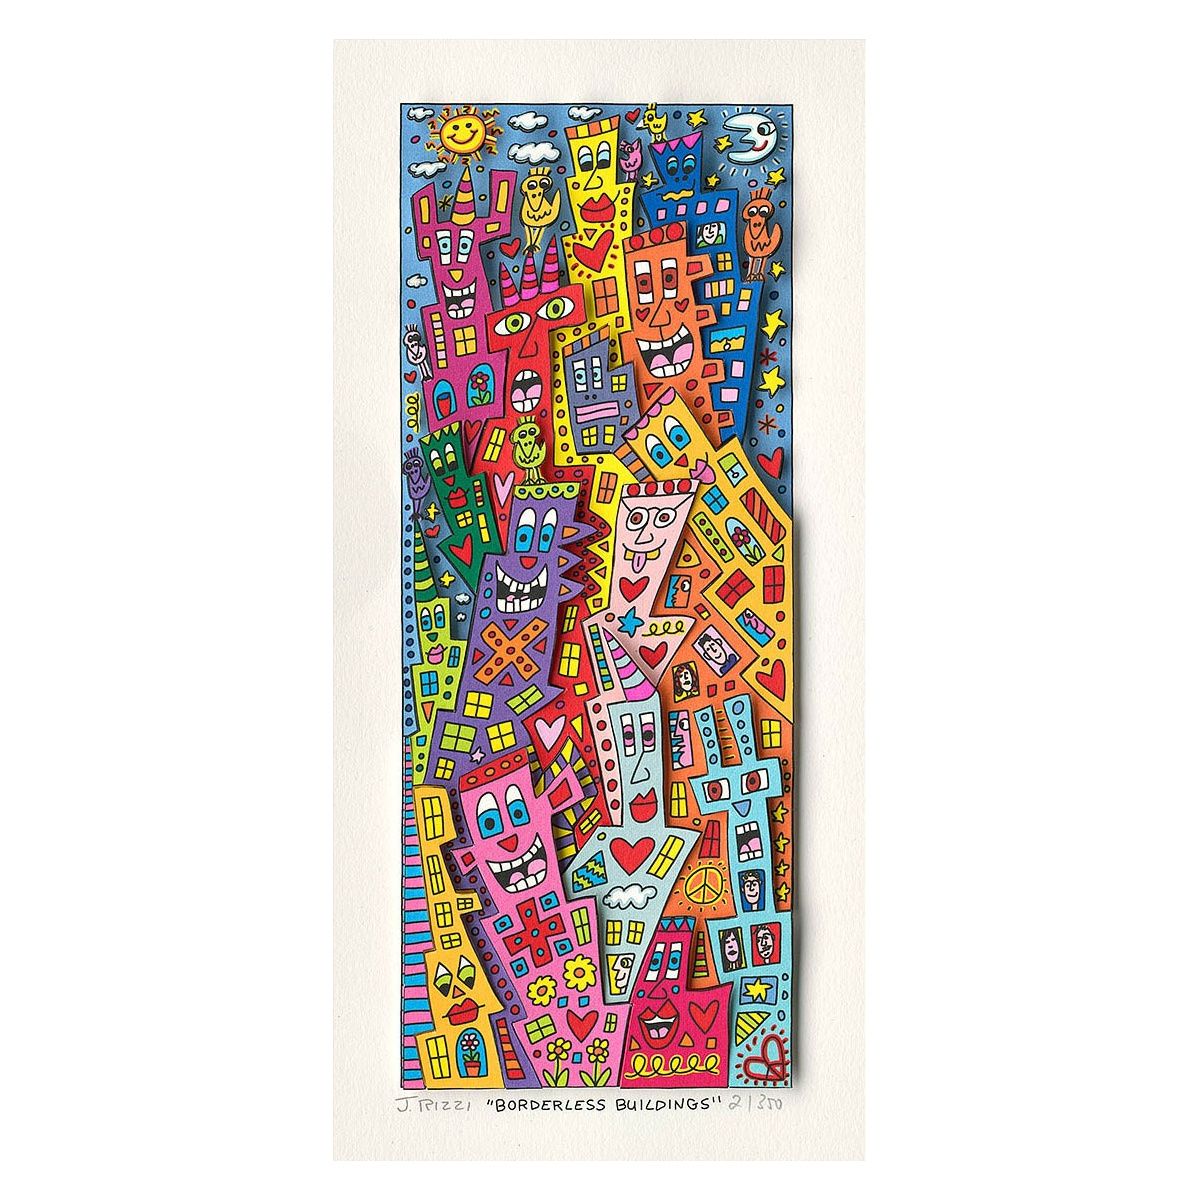 Borderless buildings von James Rizzi